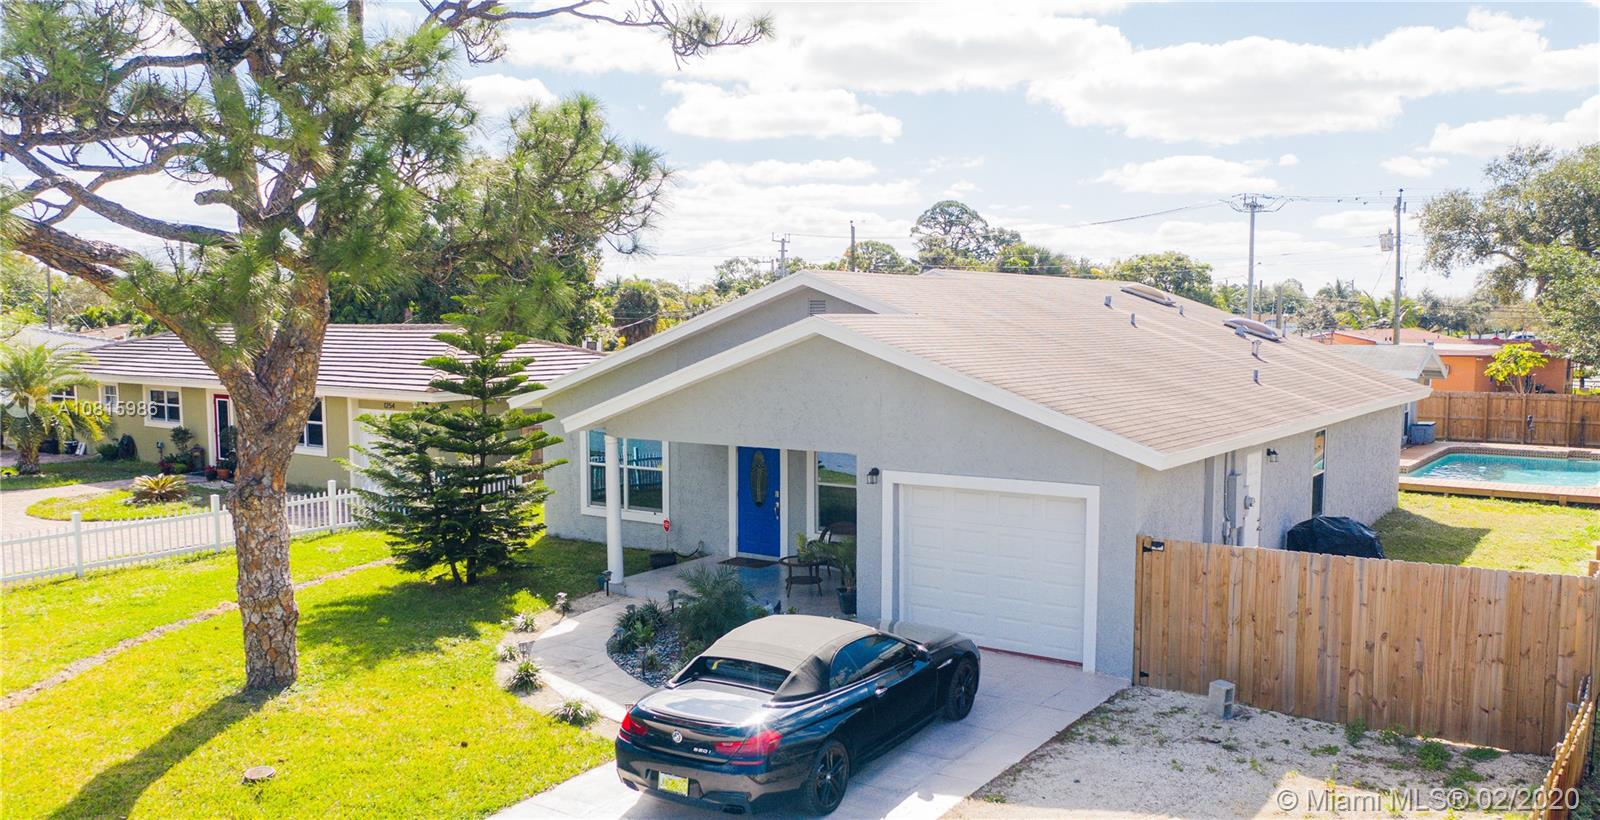 Beautiful  home in the growing community of Oakland Park. The house is updated with modern finishes. Master bedroom features a large walk-in closet and his/her closet space.  Enjoy the pool with a surrounding wooden deck.  A guest house with it's own electric box that can be easily converted into a 4th bedroom/bath guest suite.  Large lot of 10,000 SQFt with plenty of space for entertainment. Less than 5 miles to Fort Lauderdale International airport and Fort Lauderdale Beach.  There are two exciting new development copy and paste link below to learn more